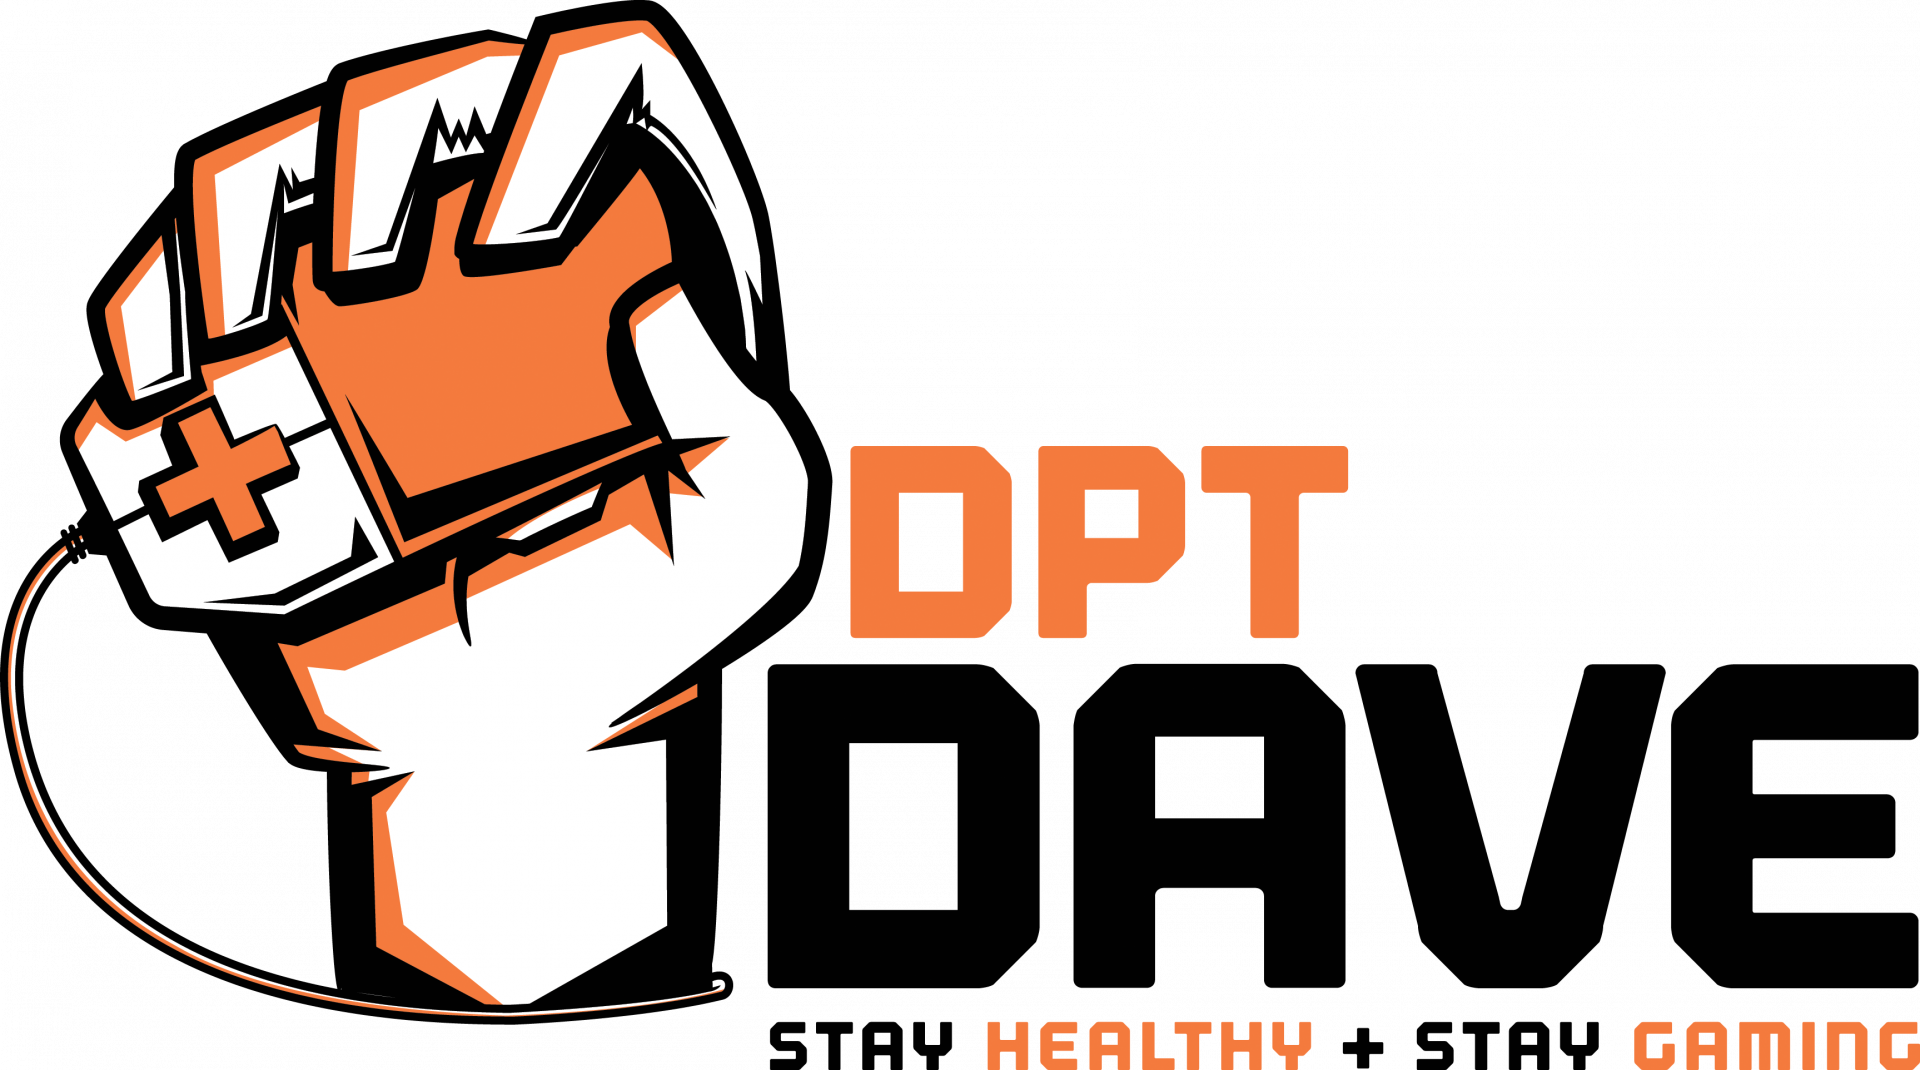 DPTDave